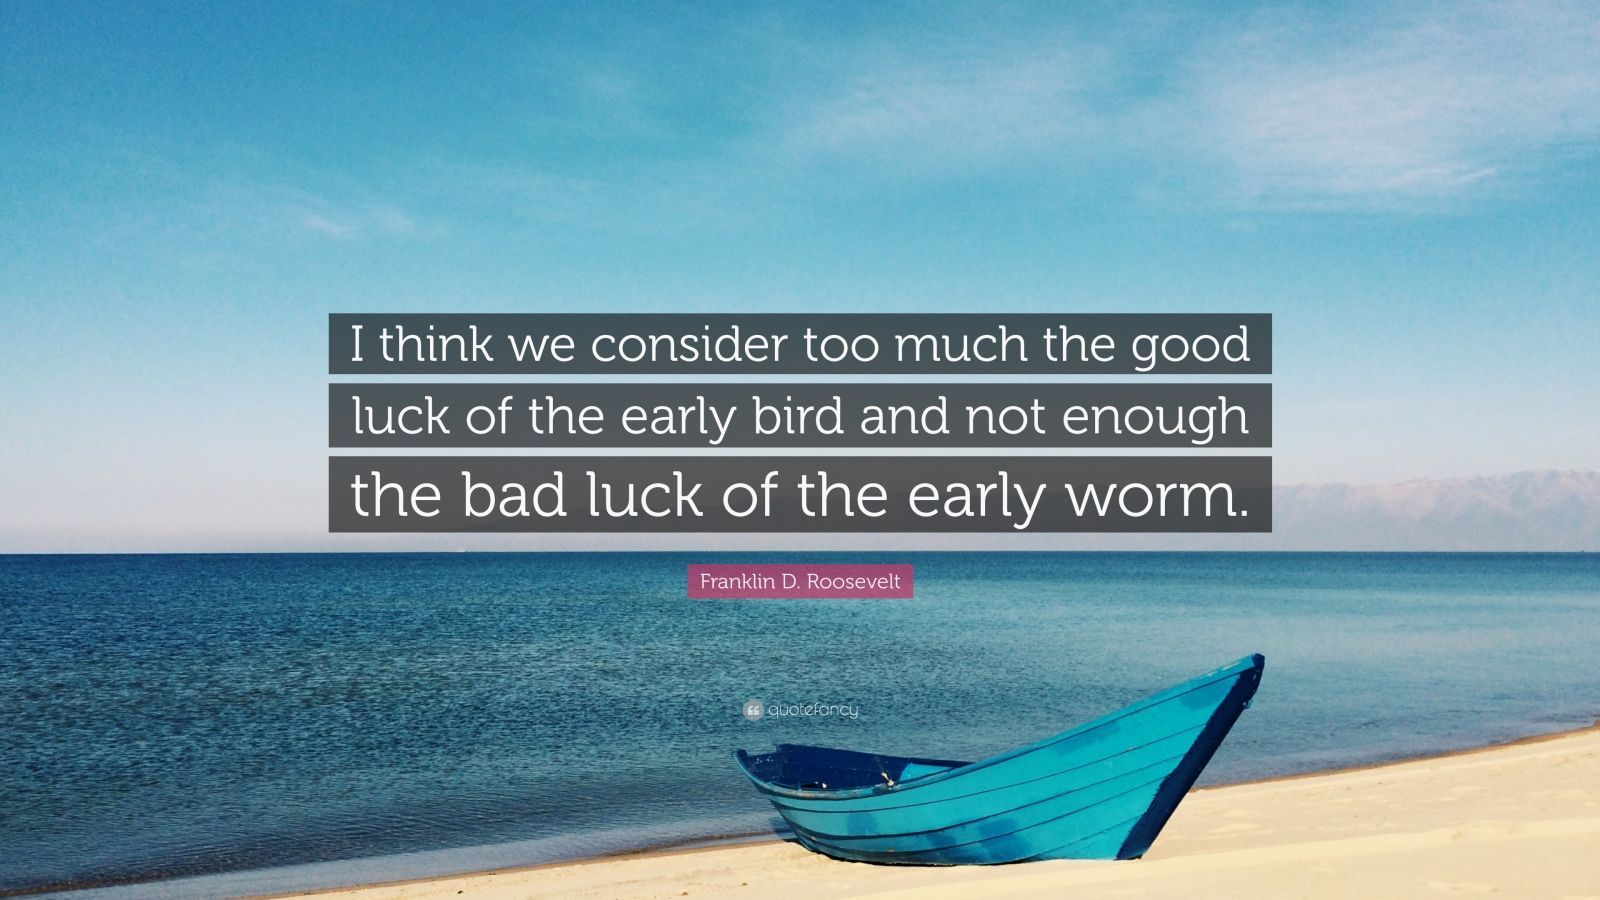 """Franklin D. Roosevelt Quote: """"I think we consider too much the good luck of the early bird and not enough the bad luck of the early worm."""""""